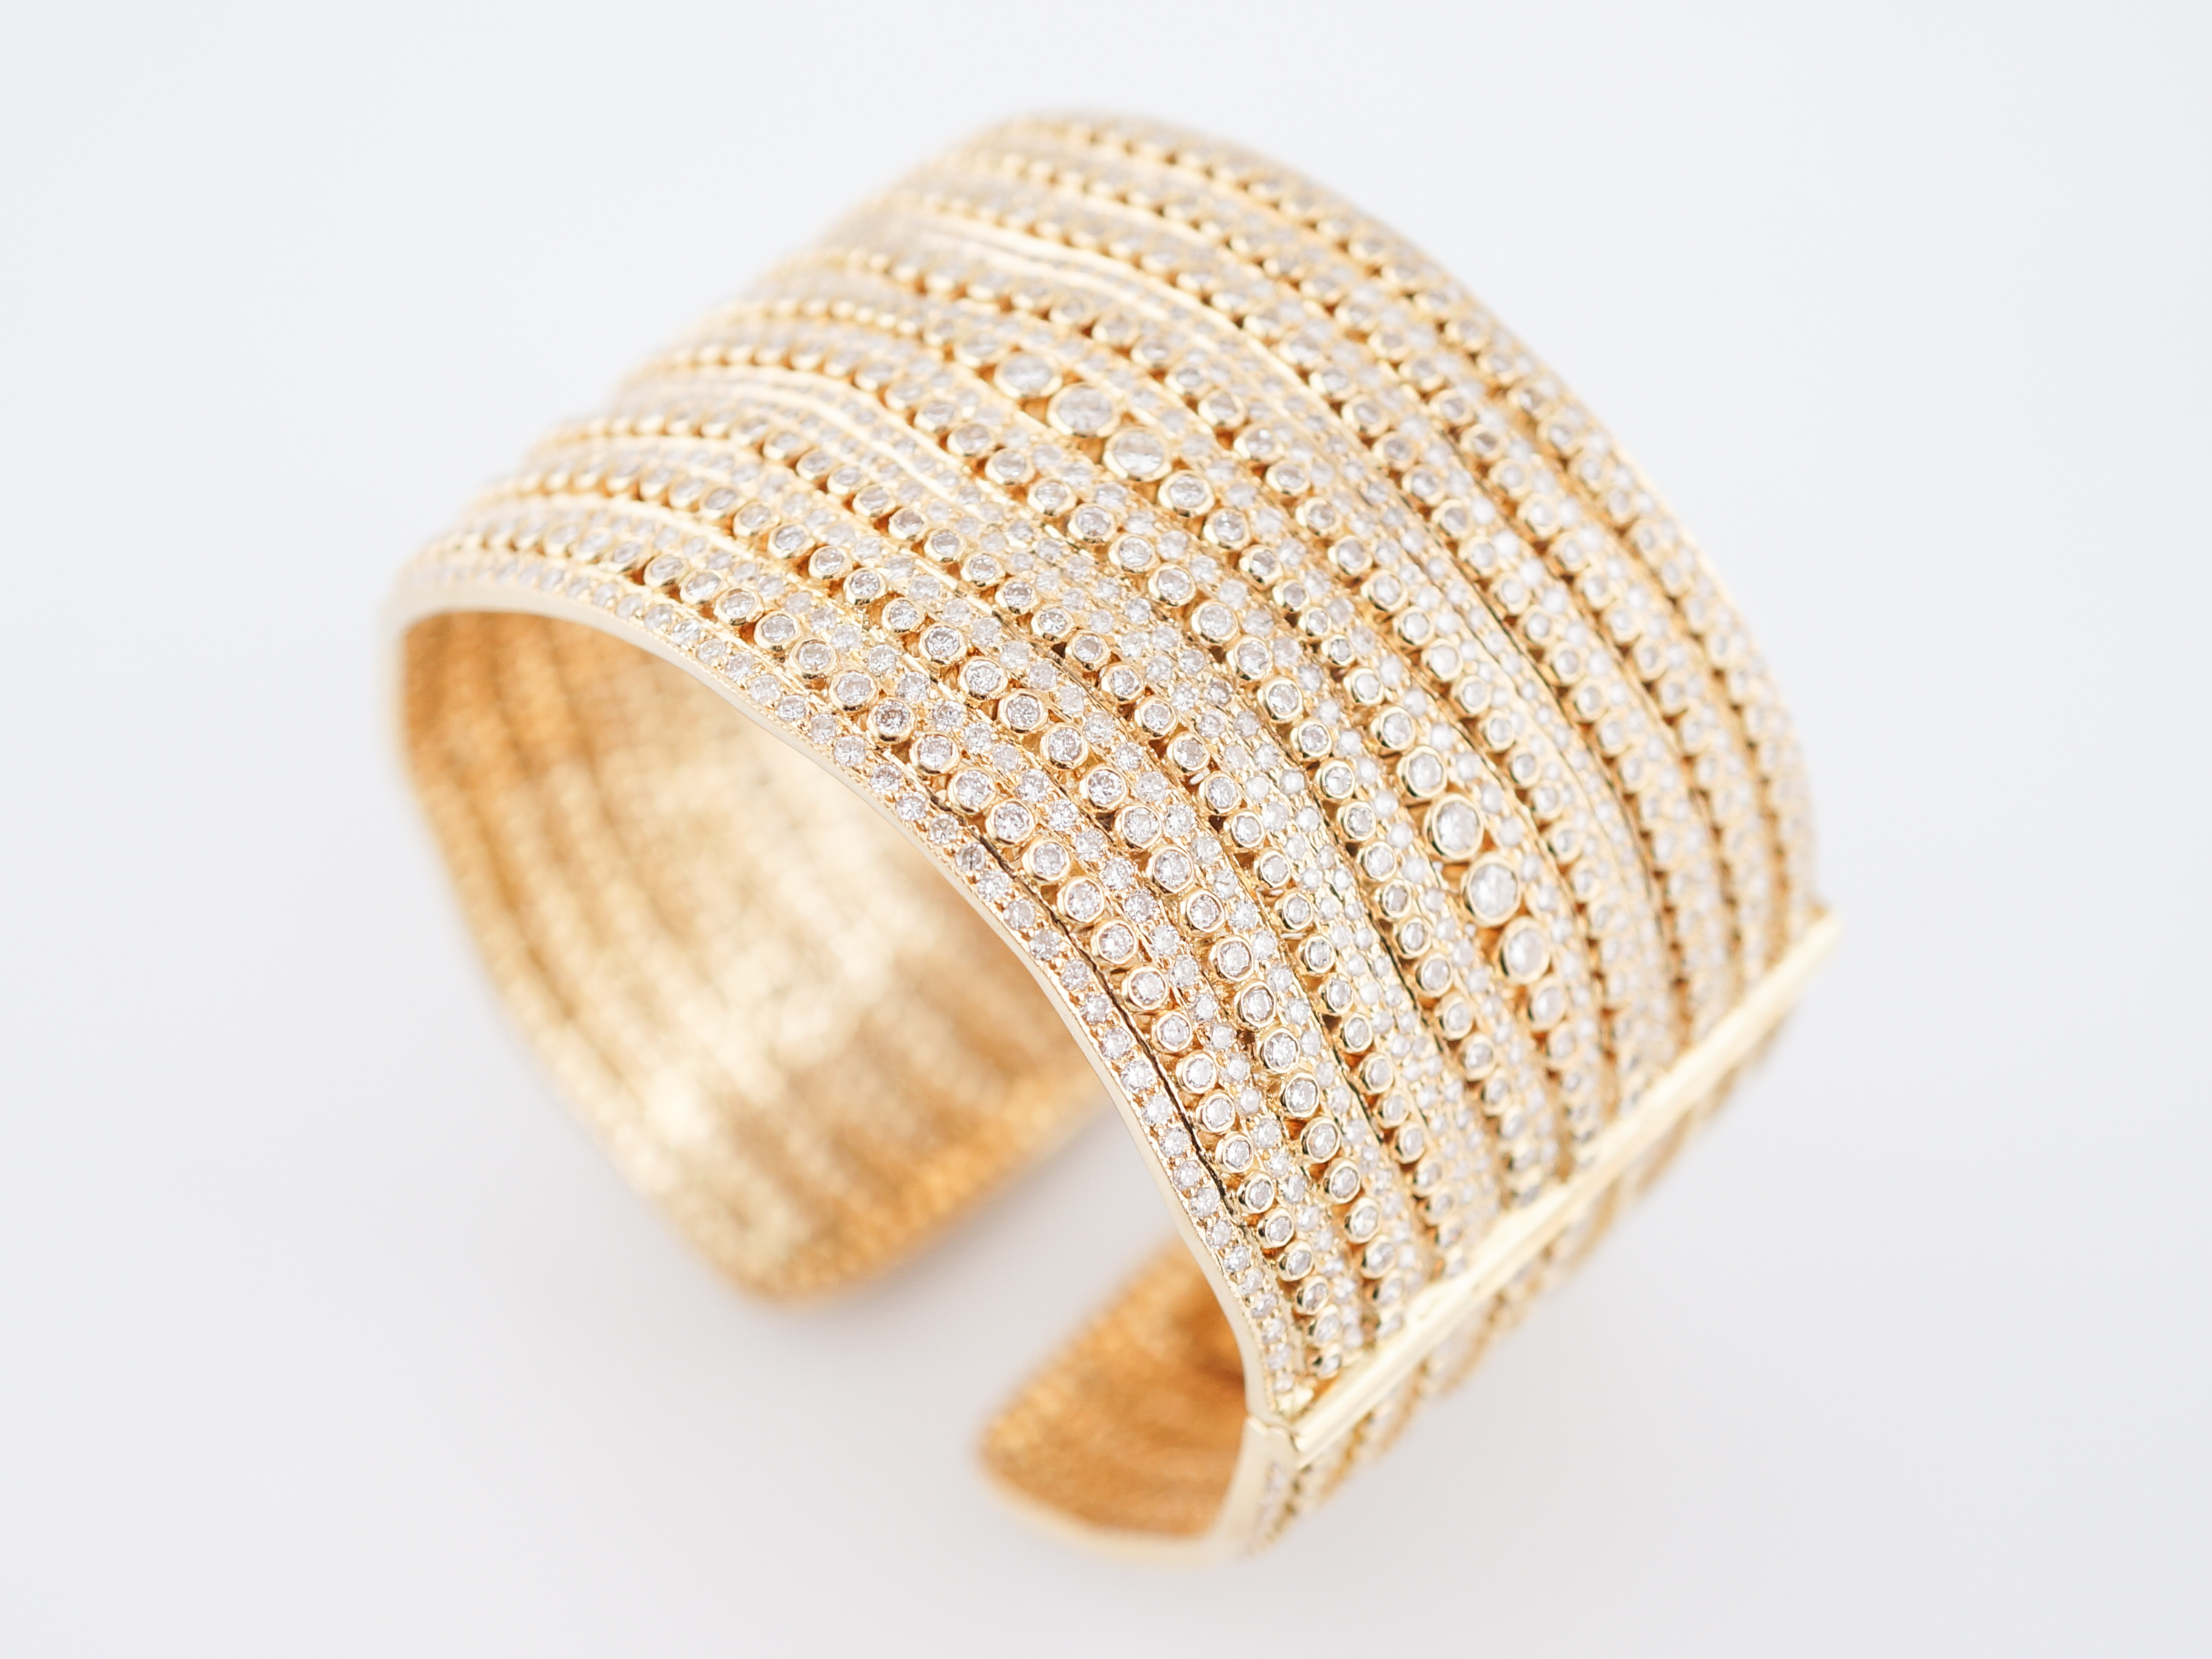 bangles bangle inch gold fashion chains bracelet s runway silver russian pin link bracelets jewelry men